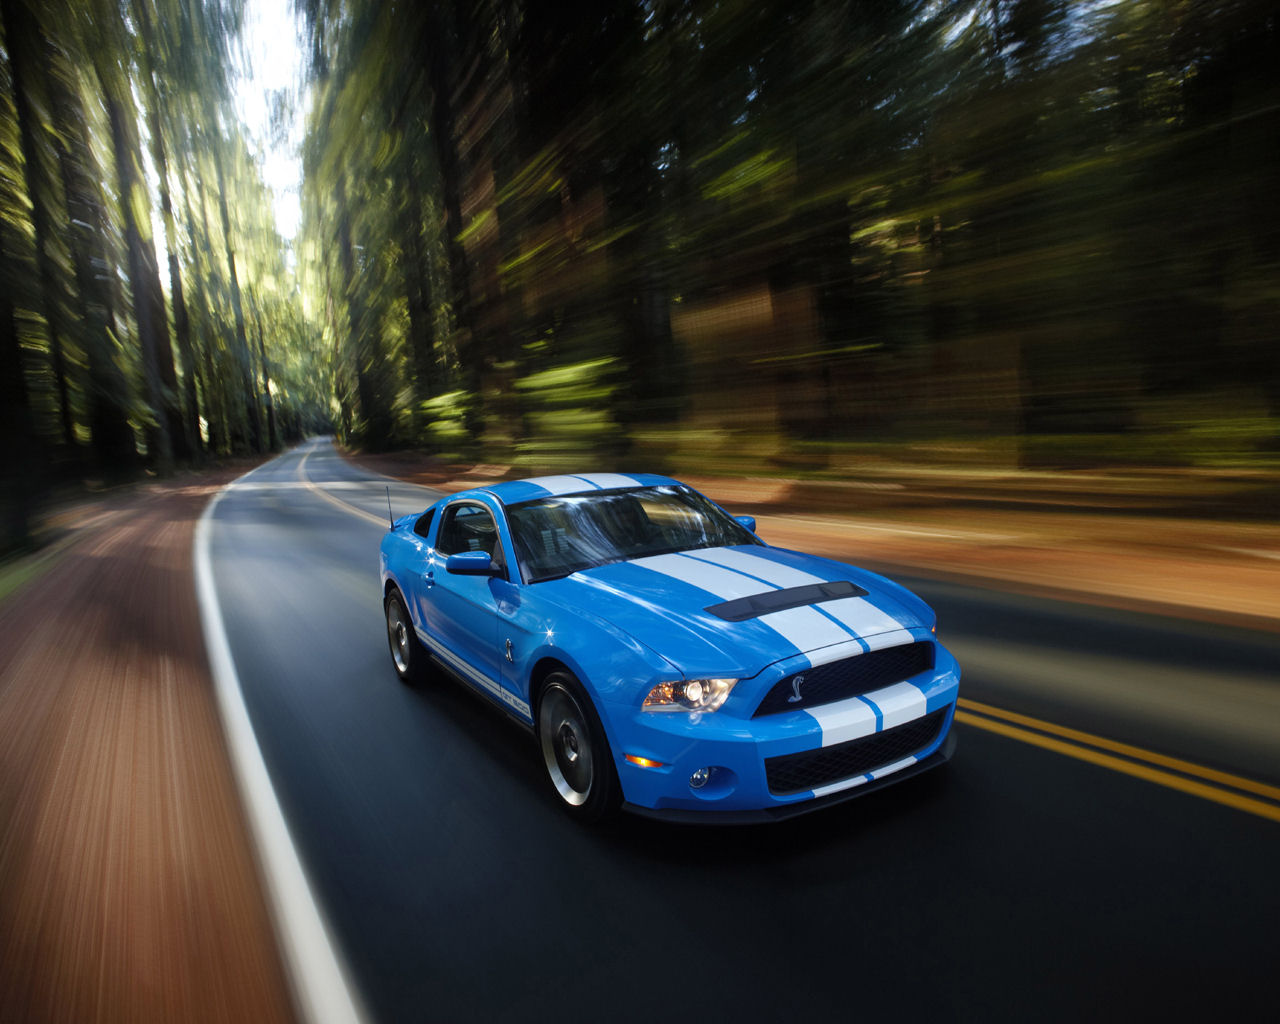 ford mustang shelby gt convertible   wallpaper desktop background picture